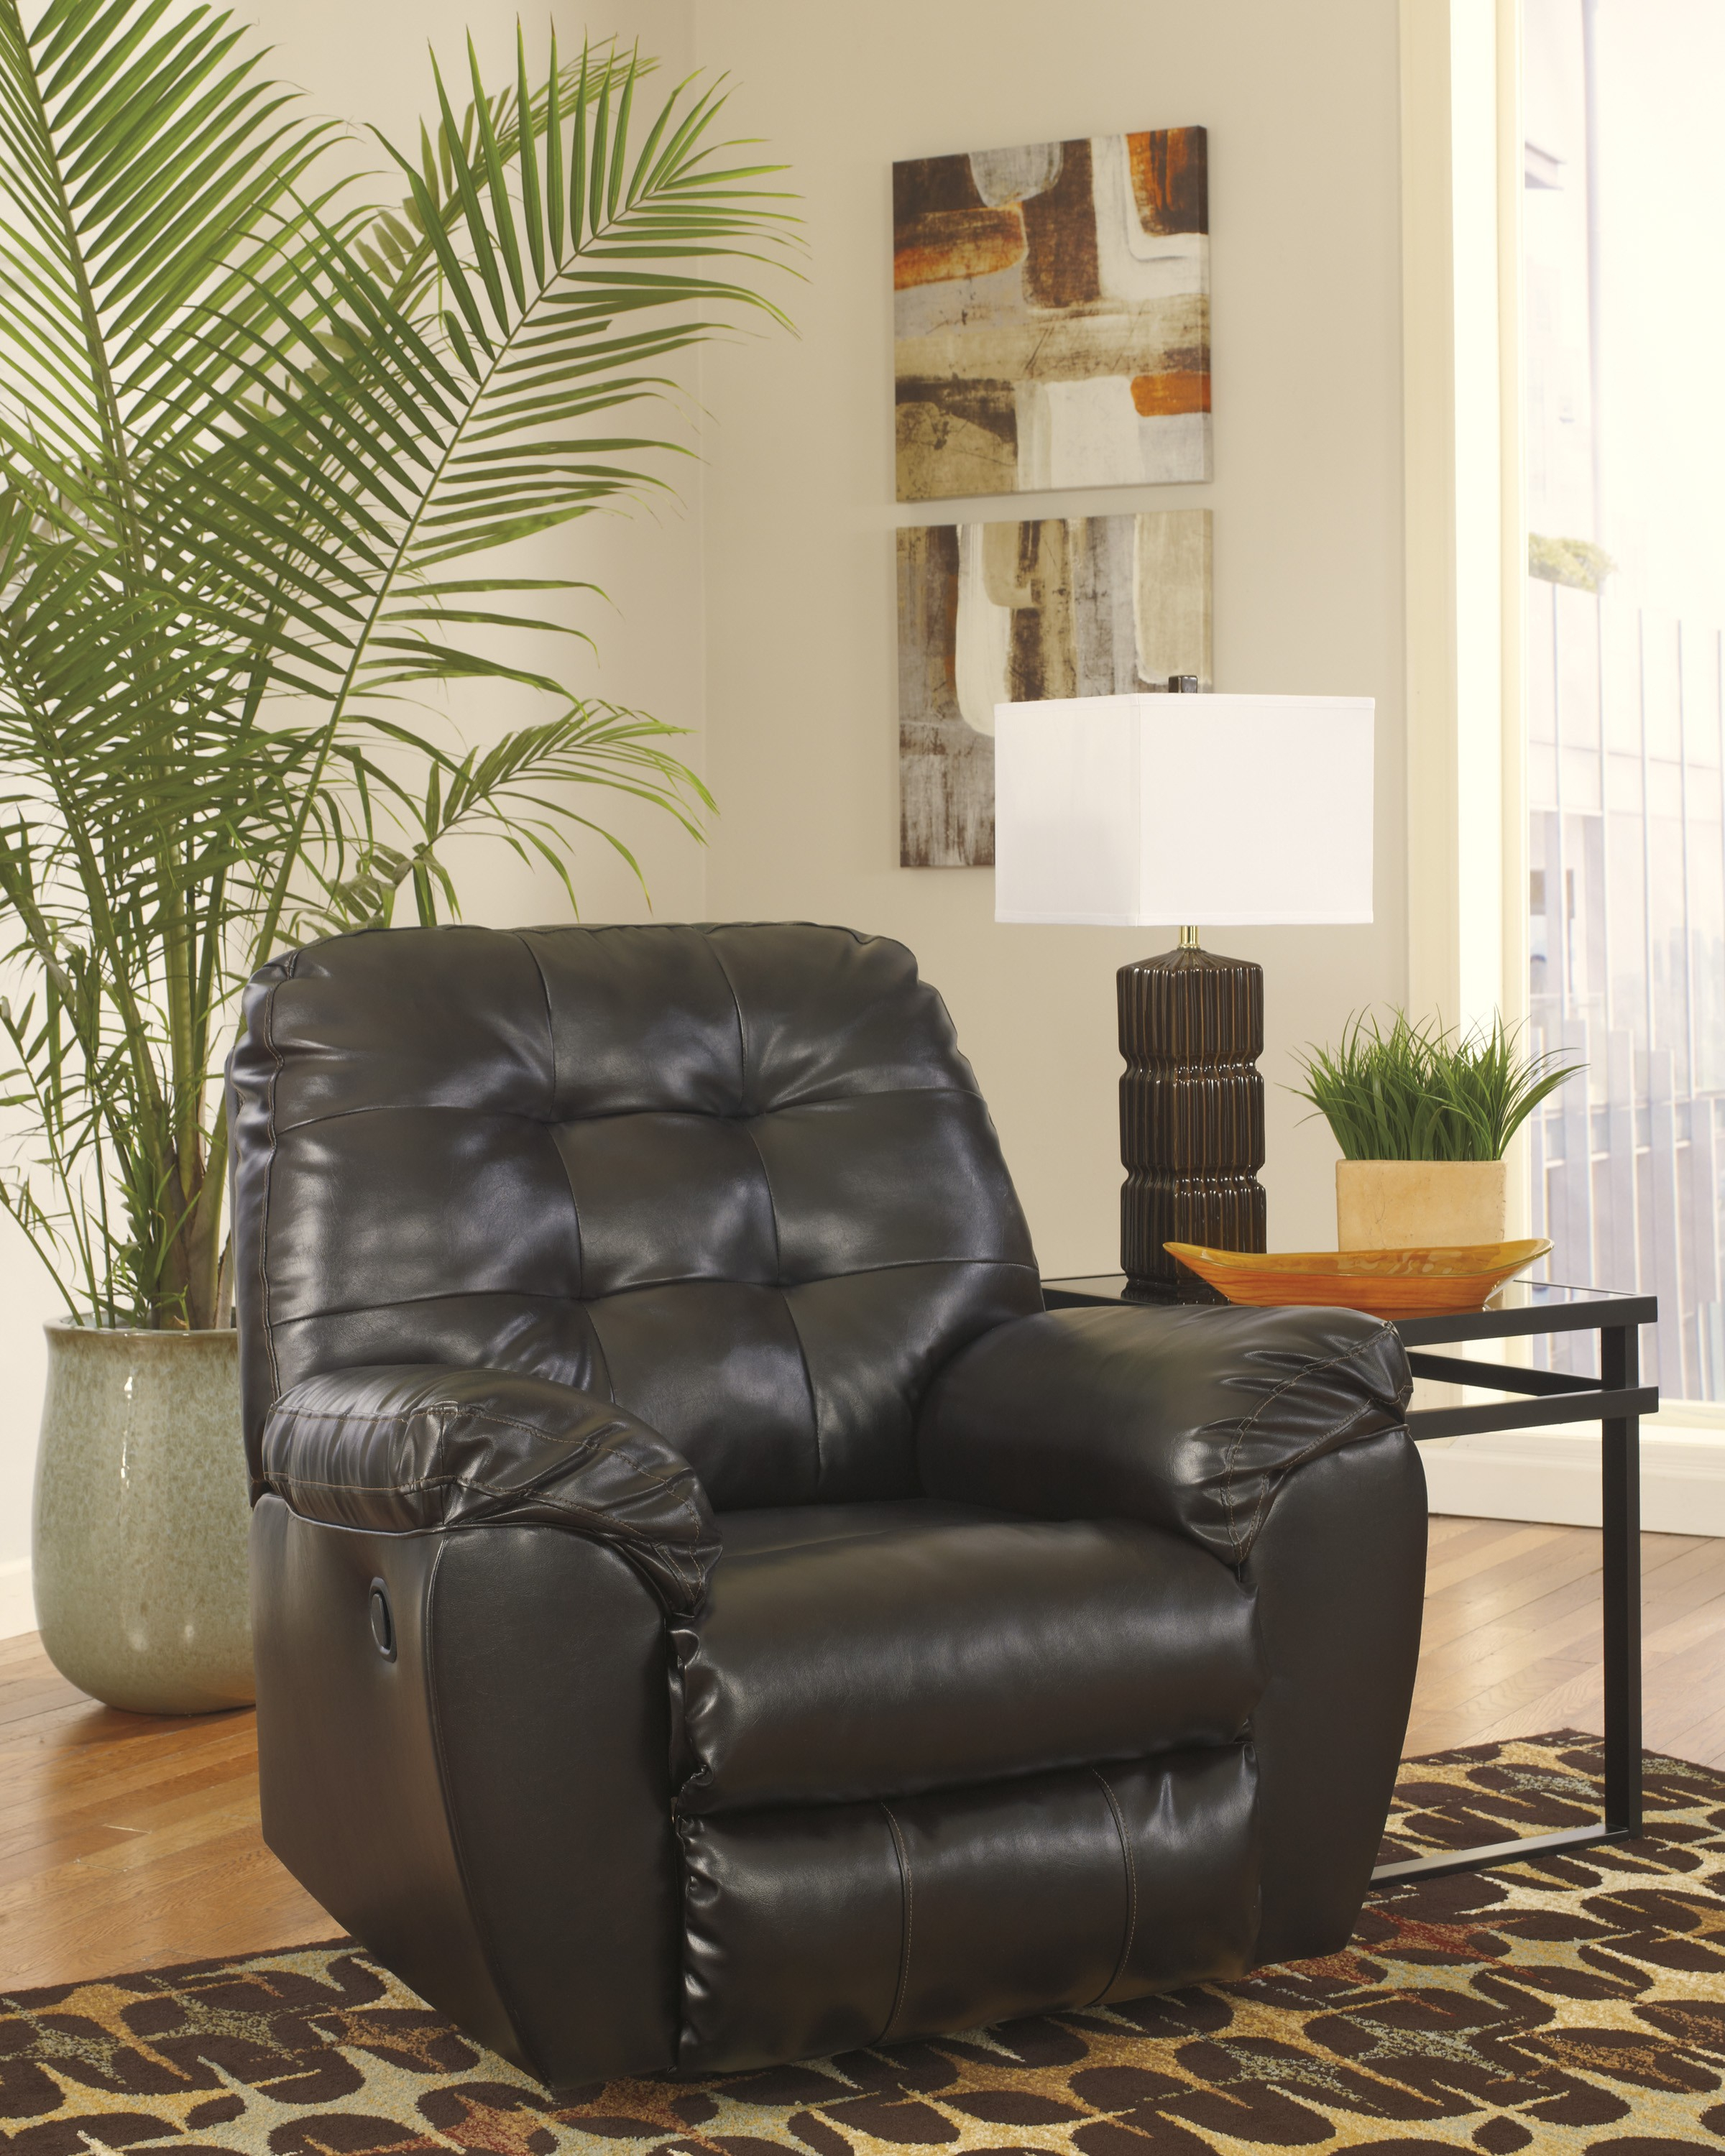 Leon Furniture | Buy Living Rooms Recliners Online, Phoenix Within Hercules Oyster Swivel Glider Recliners (Image 14 of 20)